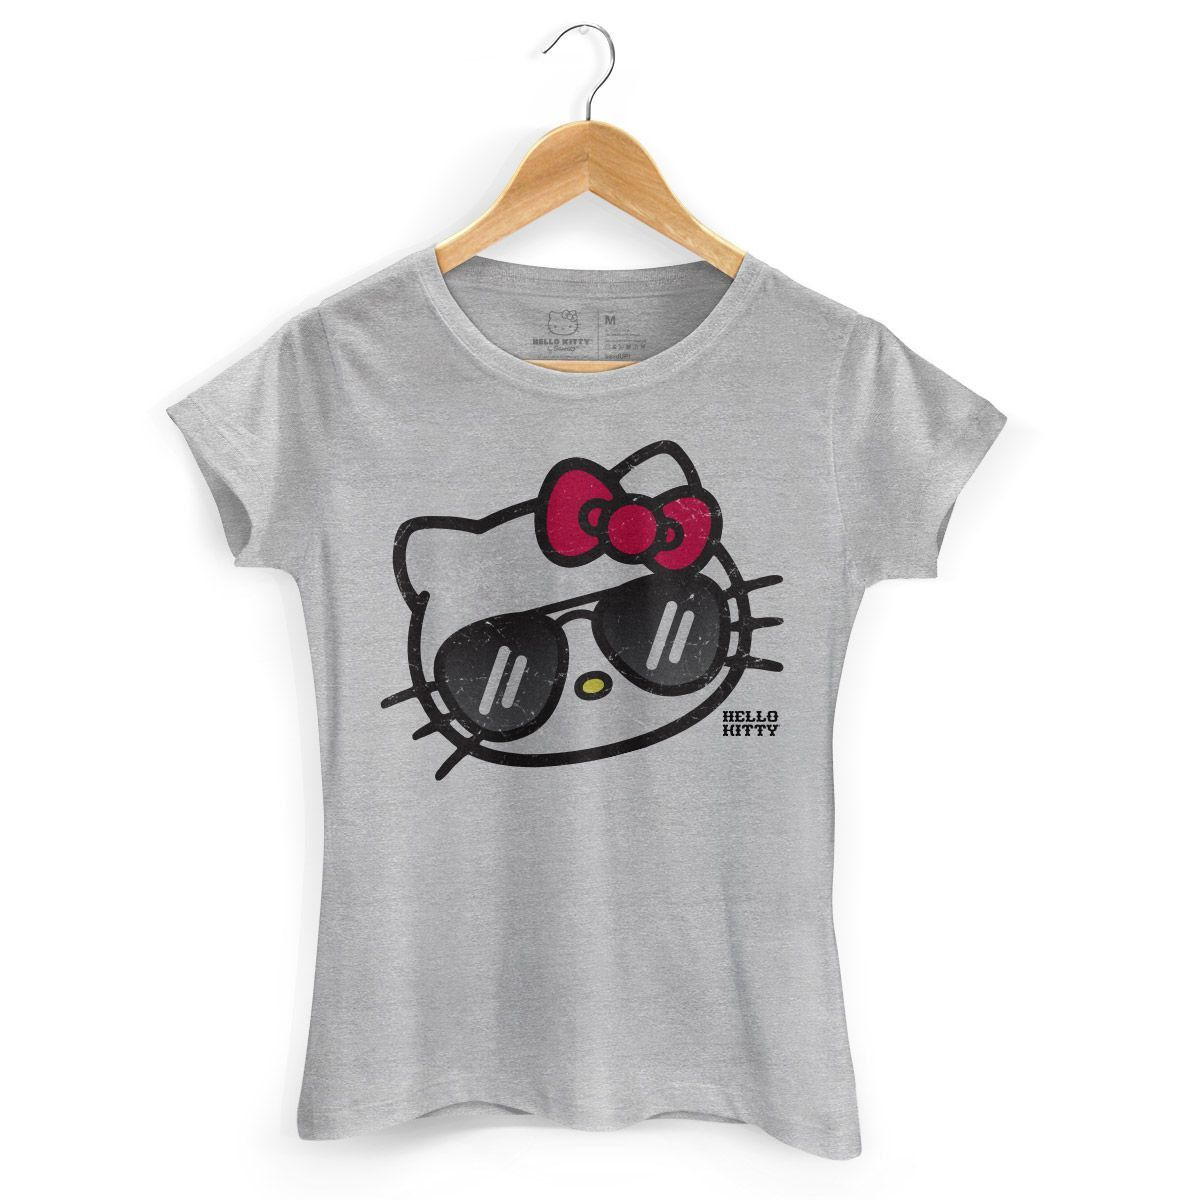 Camiseta Hello Kitty Sunglasses  - bandUP Store Marketplace